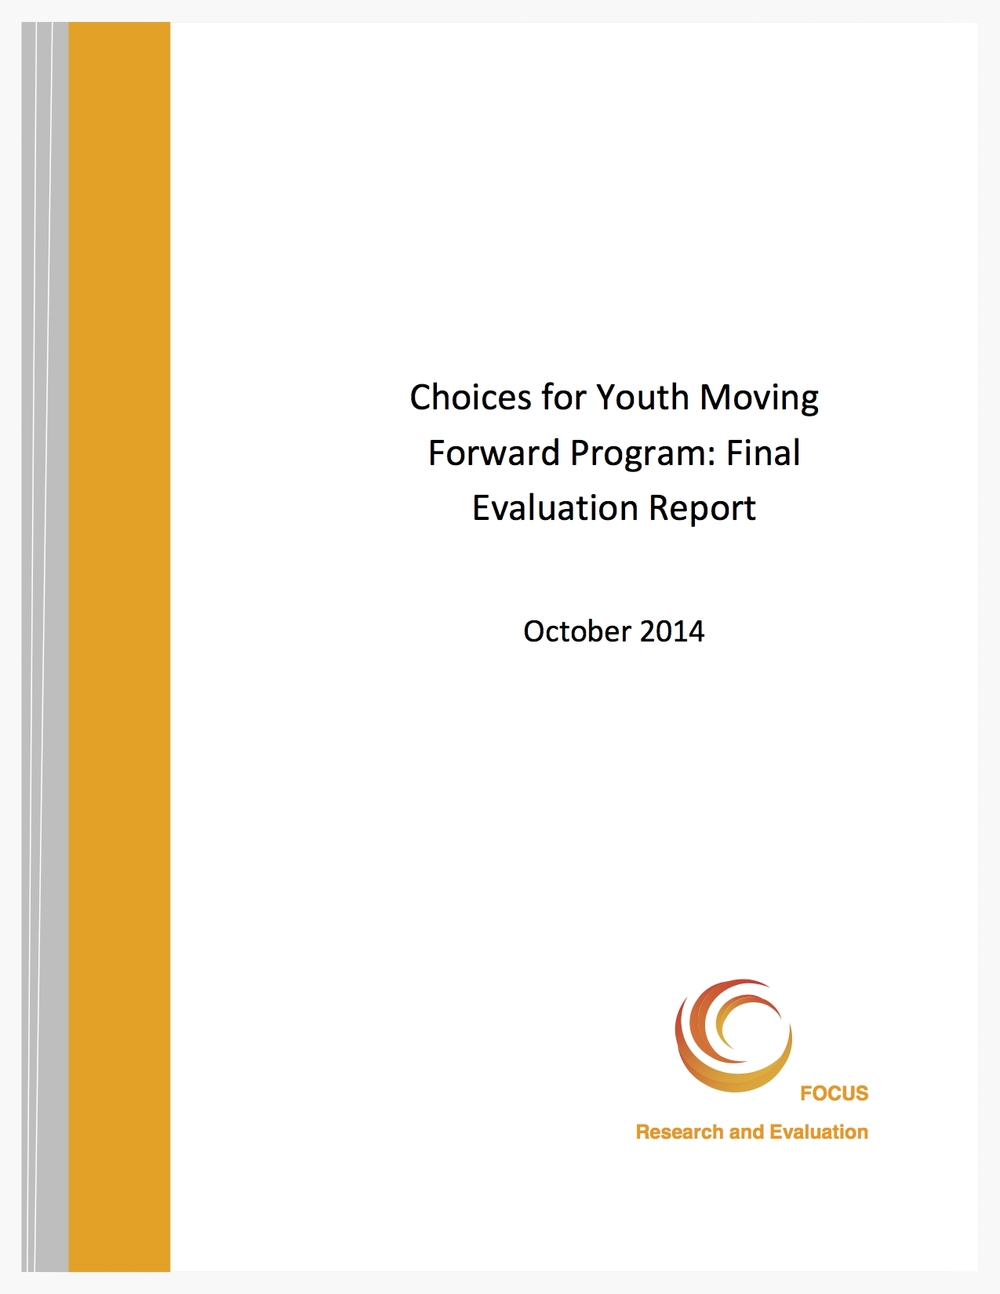 Moving Forward Evaluation 2014 - copie.jpg